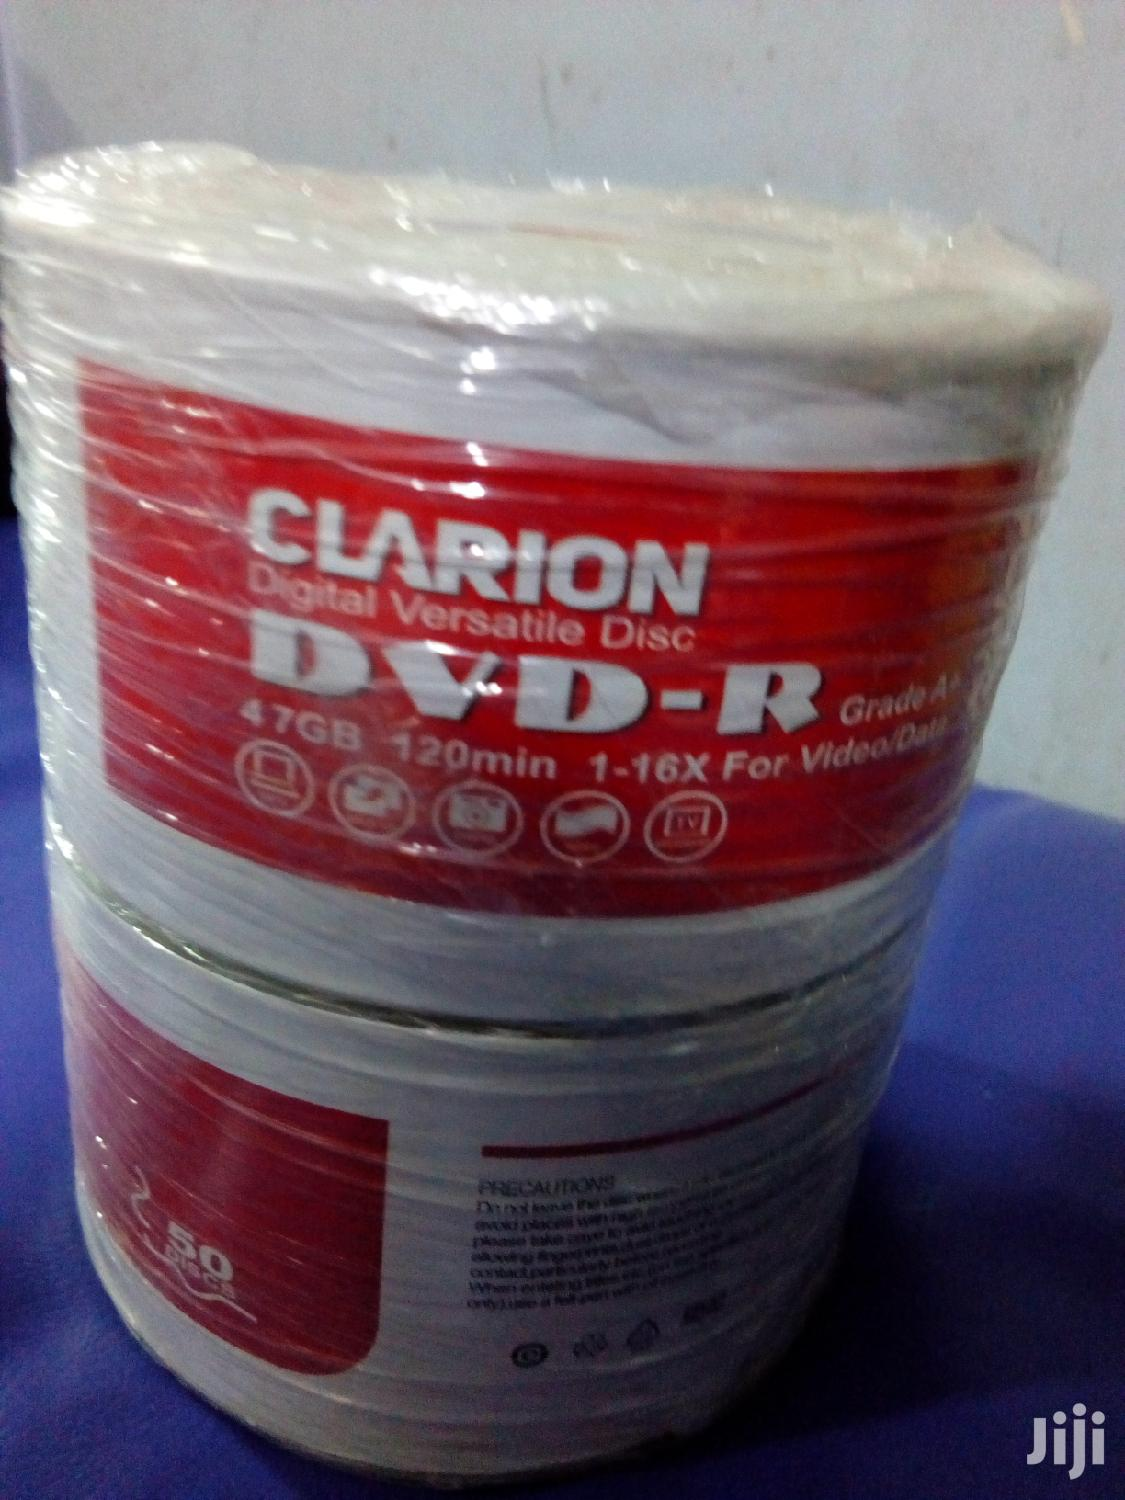 DVD R.. (Clarion)